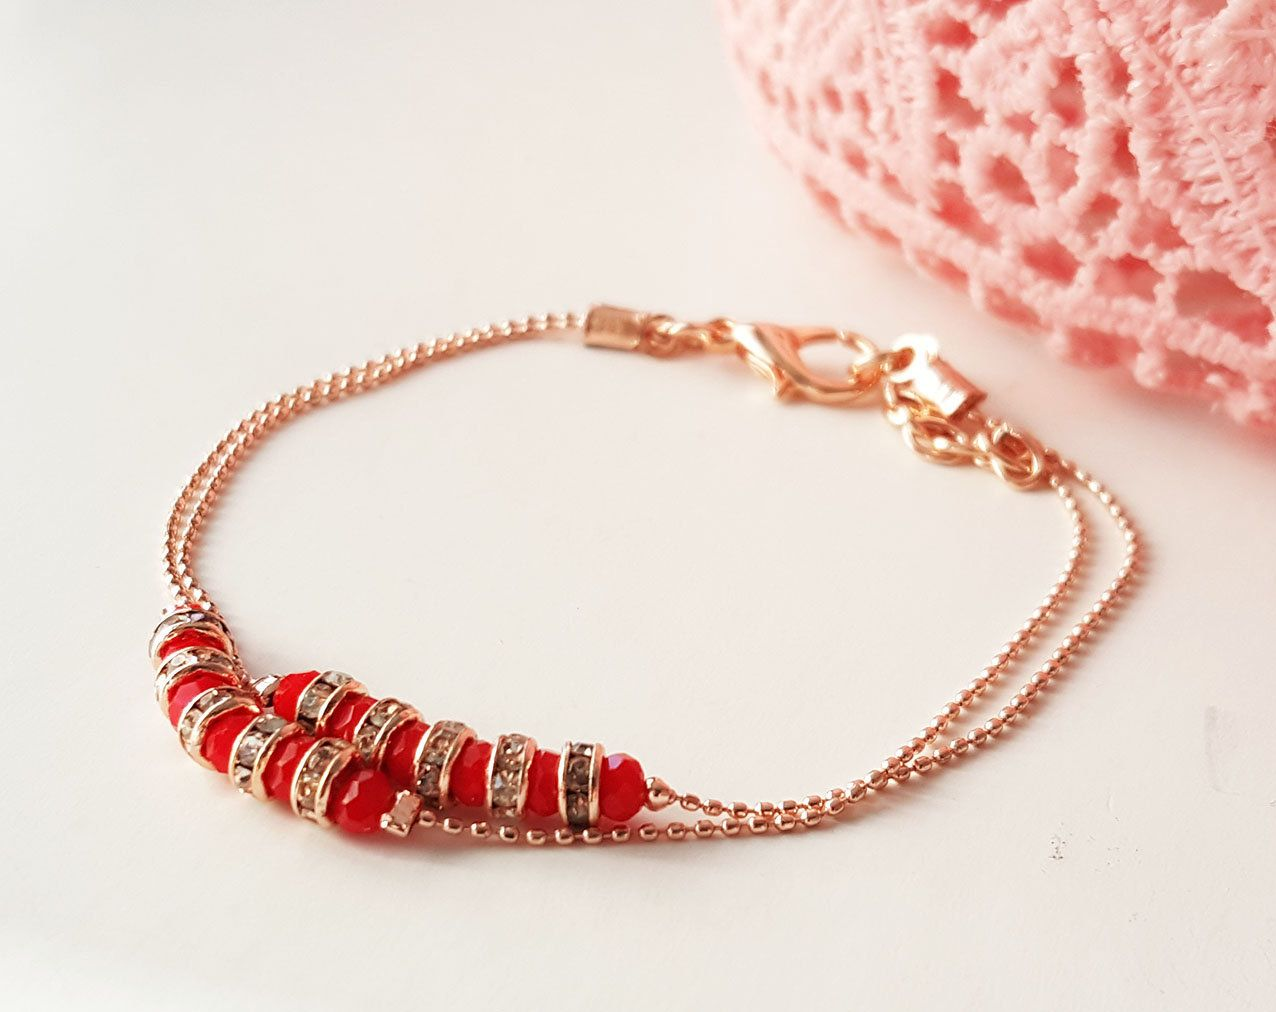 Photo of Red crystal bracelet, 2 strands bracelet, Rose gold jewelry, Gift for best friends, Birthday gift, double row bracelet, chain bracelet